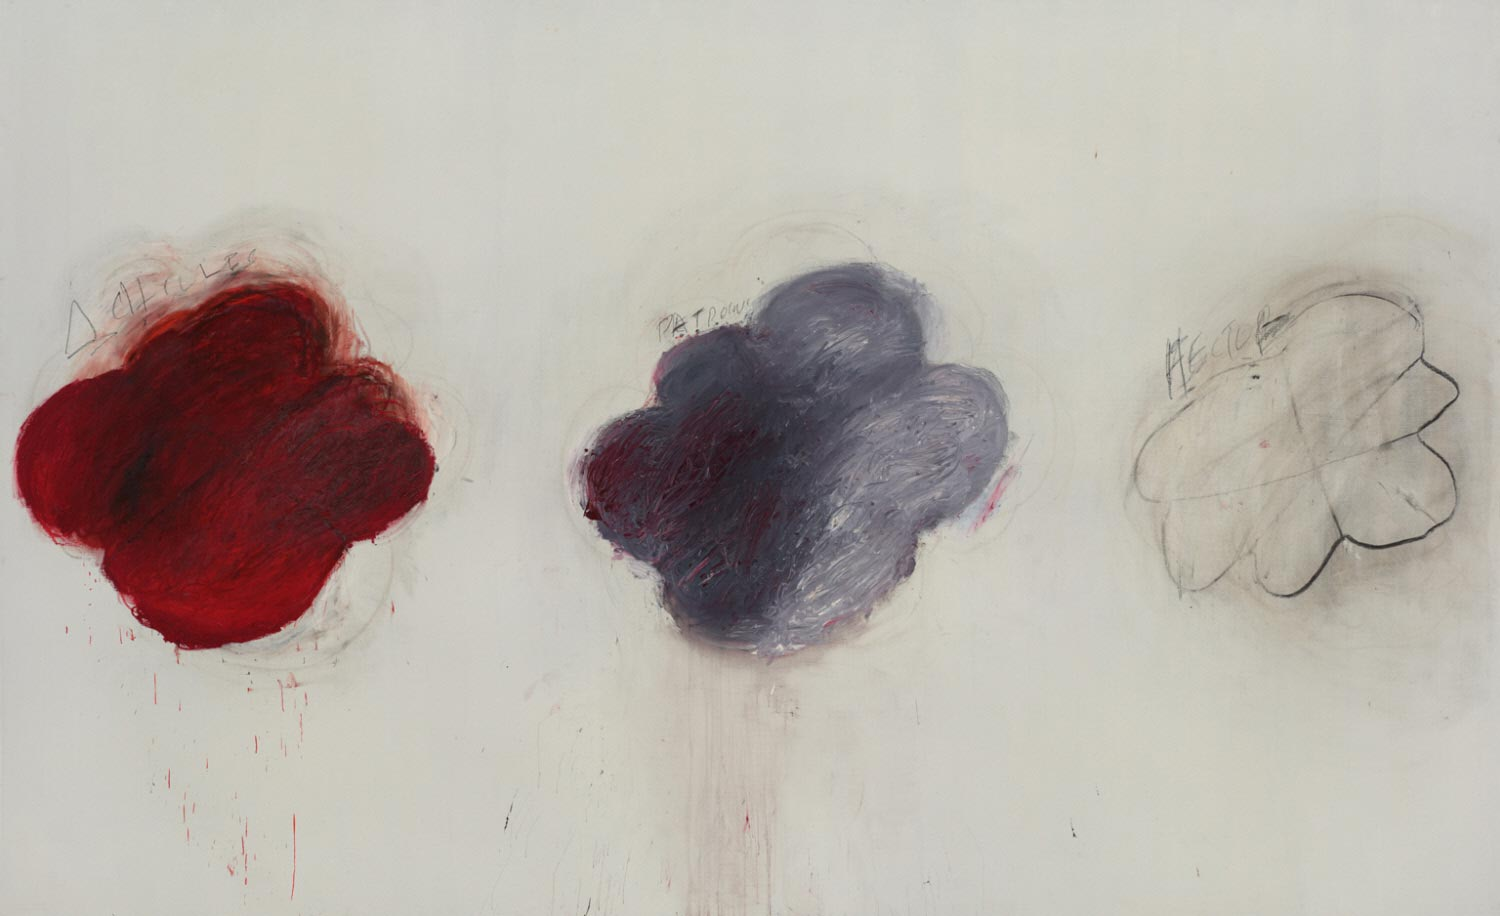 Cy Twombly, Fifty Days at Iliam: Shades of Achilles, Patroclus, and Hector